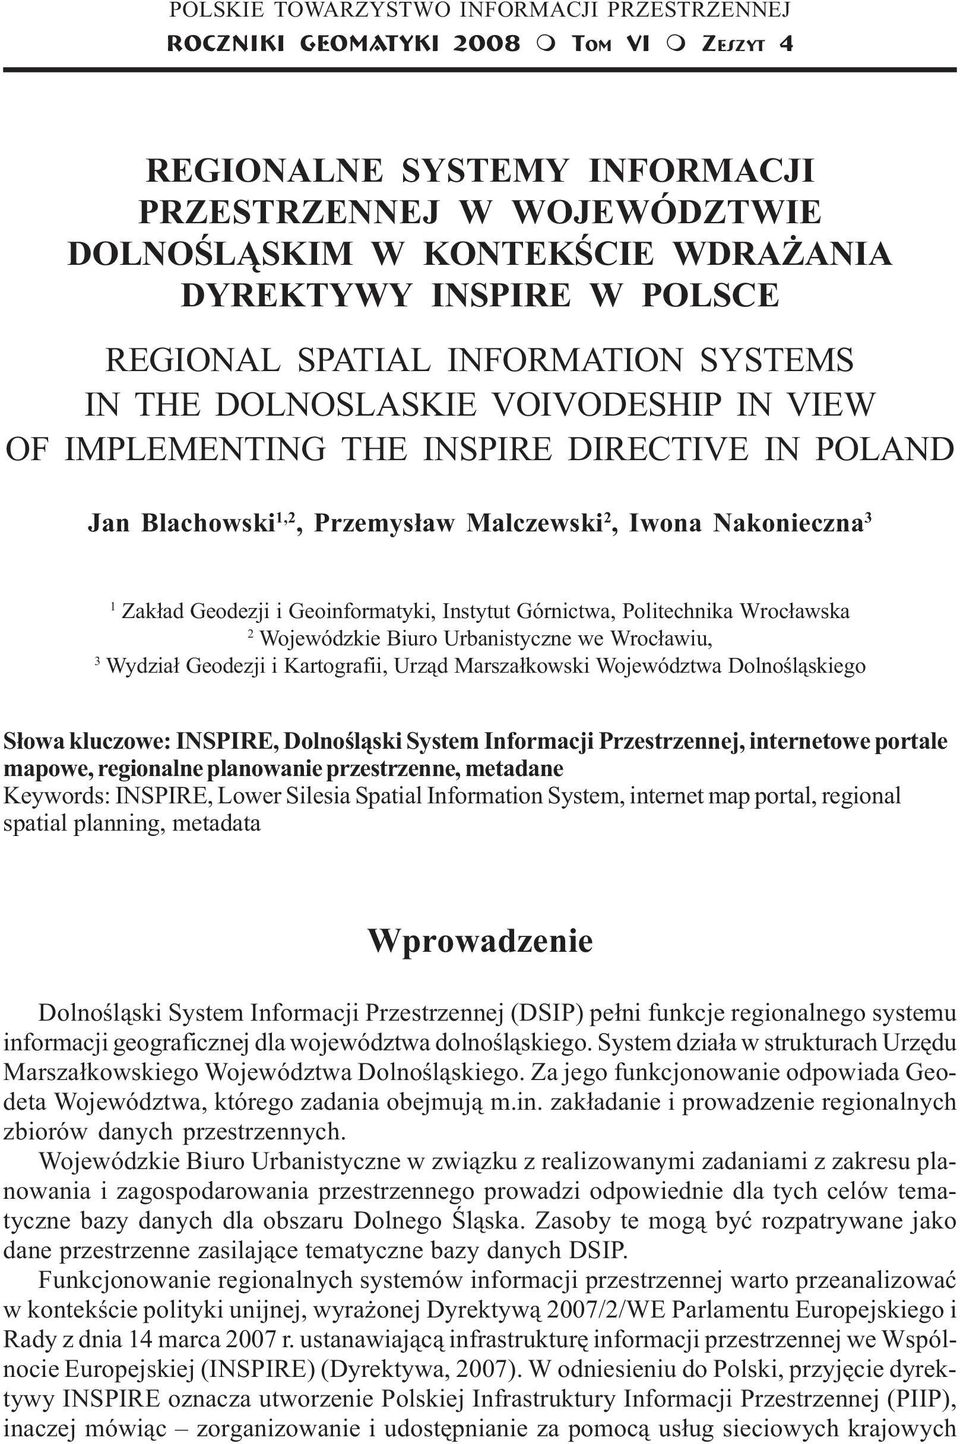 INFORMATION SYSTEMS IN THE DOLNOSLASKIE VOIVODESHIP IN VIEW OF IMPLEMENTING THE INSPIRE DIRECTIVE IN POLAND Jan Blachowski 1,2, Przemys³aw Malczewski 2, Iwona Nakonieczna 3 1 Zak³ad Geodezji i